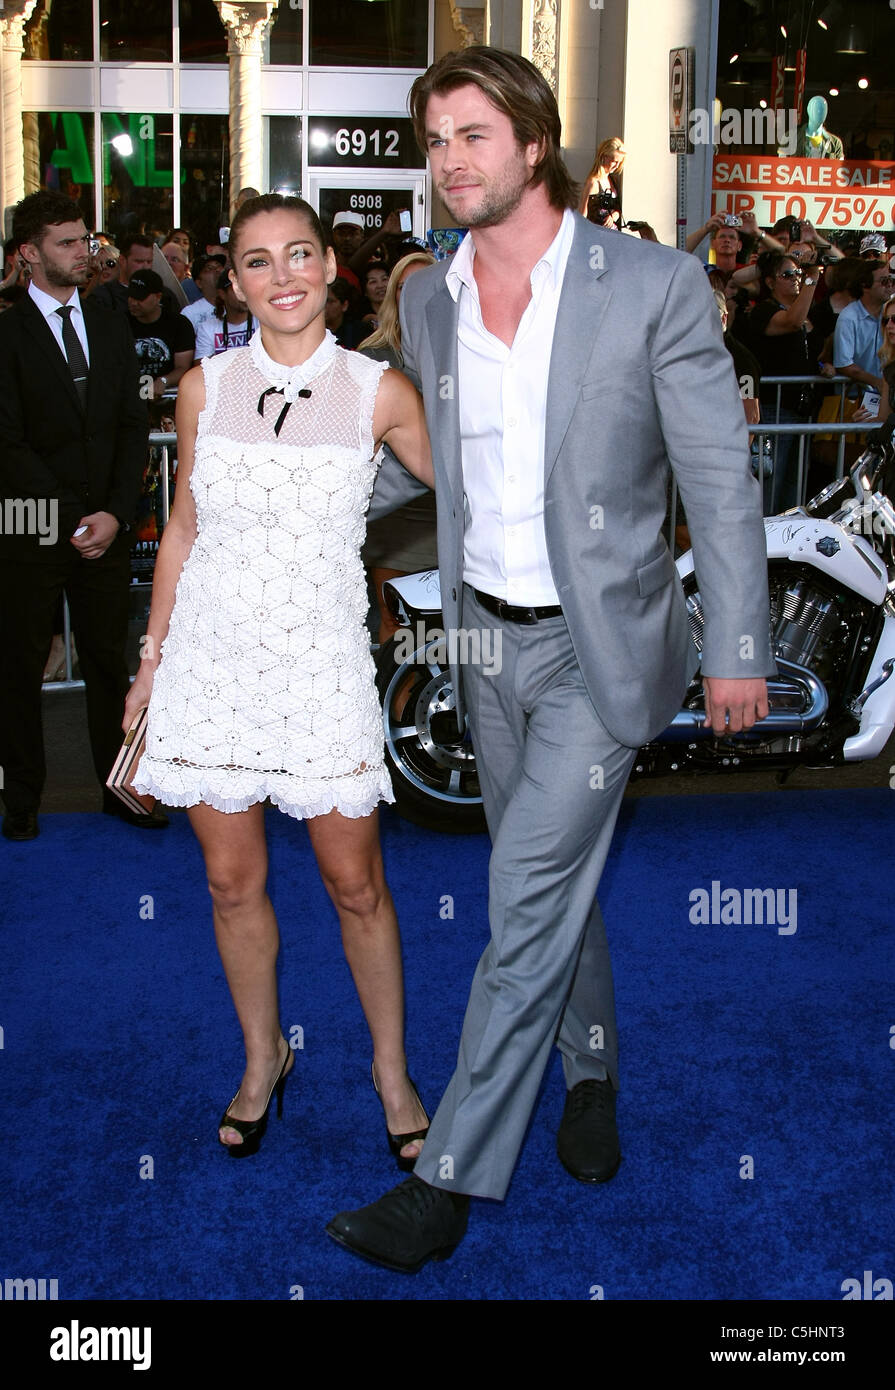 ¿Cuál creéis que es la altura ideal de un hombre? - Página 6 Elsa-pataky-chris-hemsworth-captain-america-the-first-avenger-premiere-C5HNT3